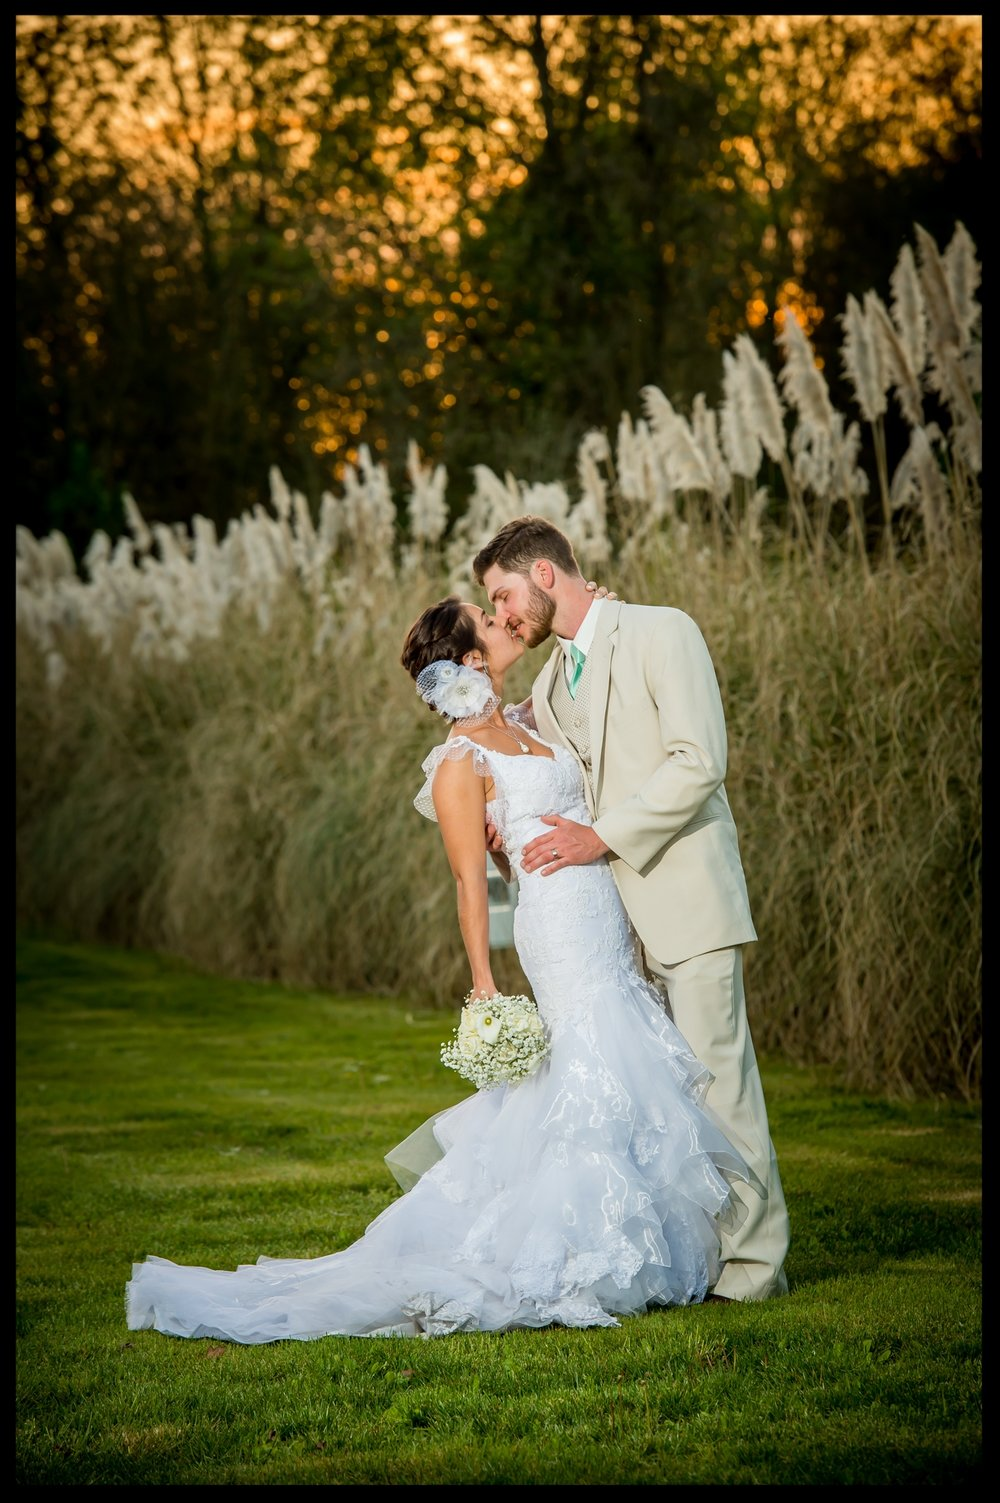 William_James_Photography_Wedding_2017-108.jpg